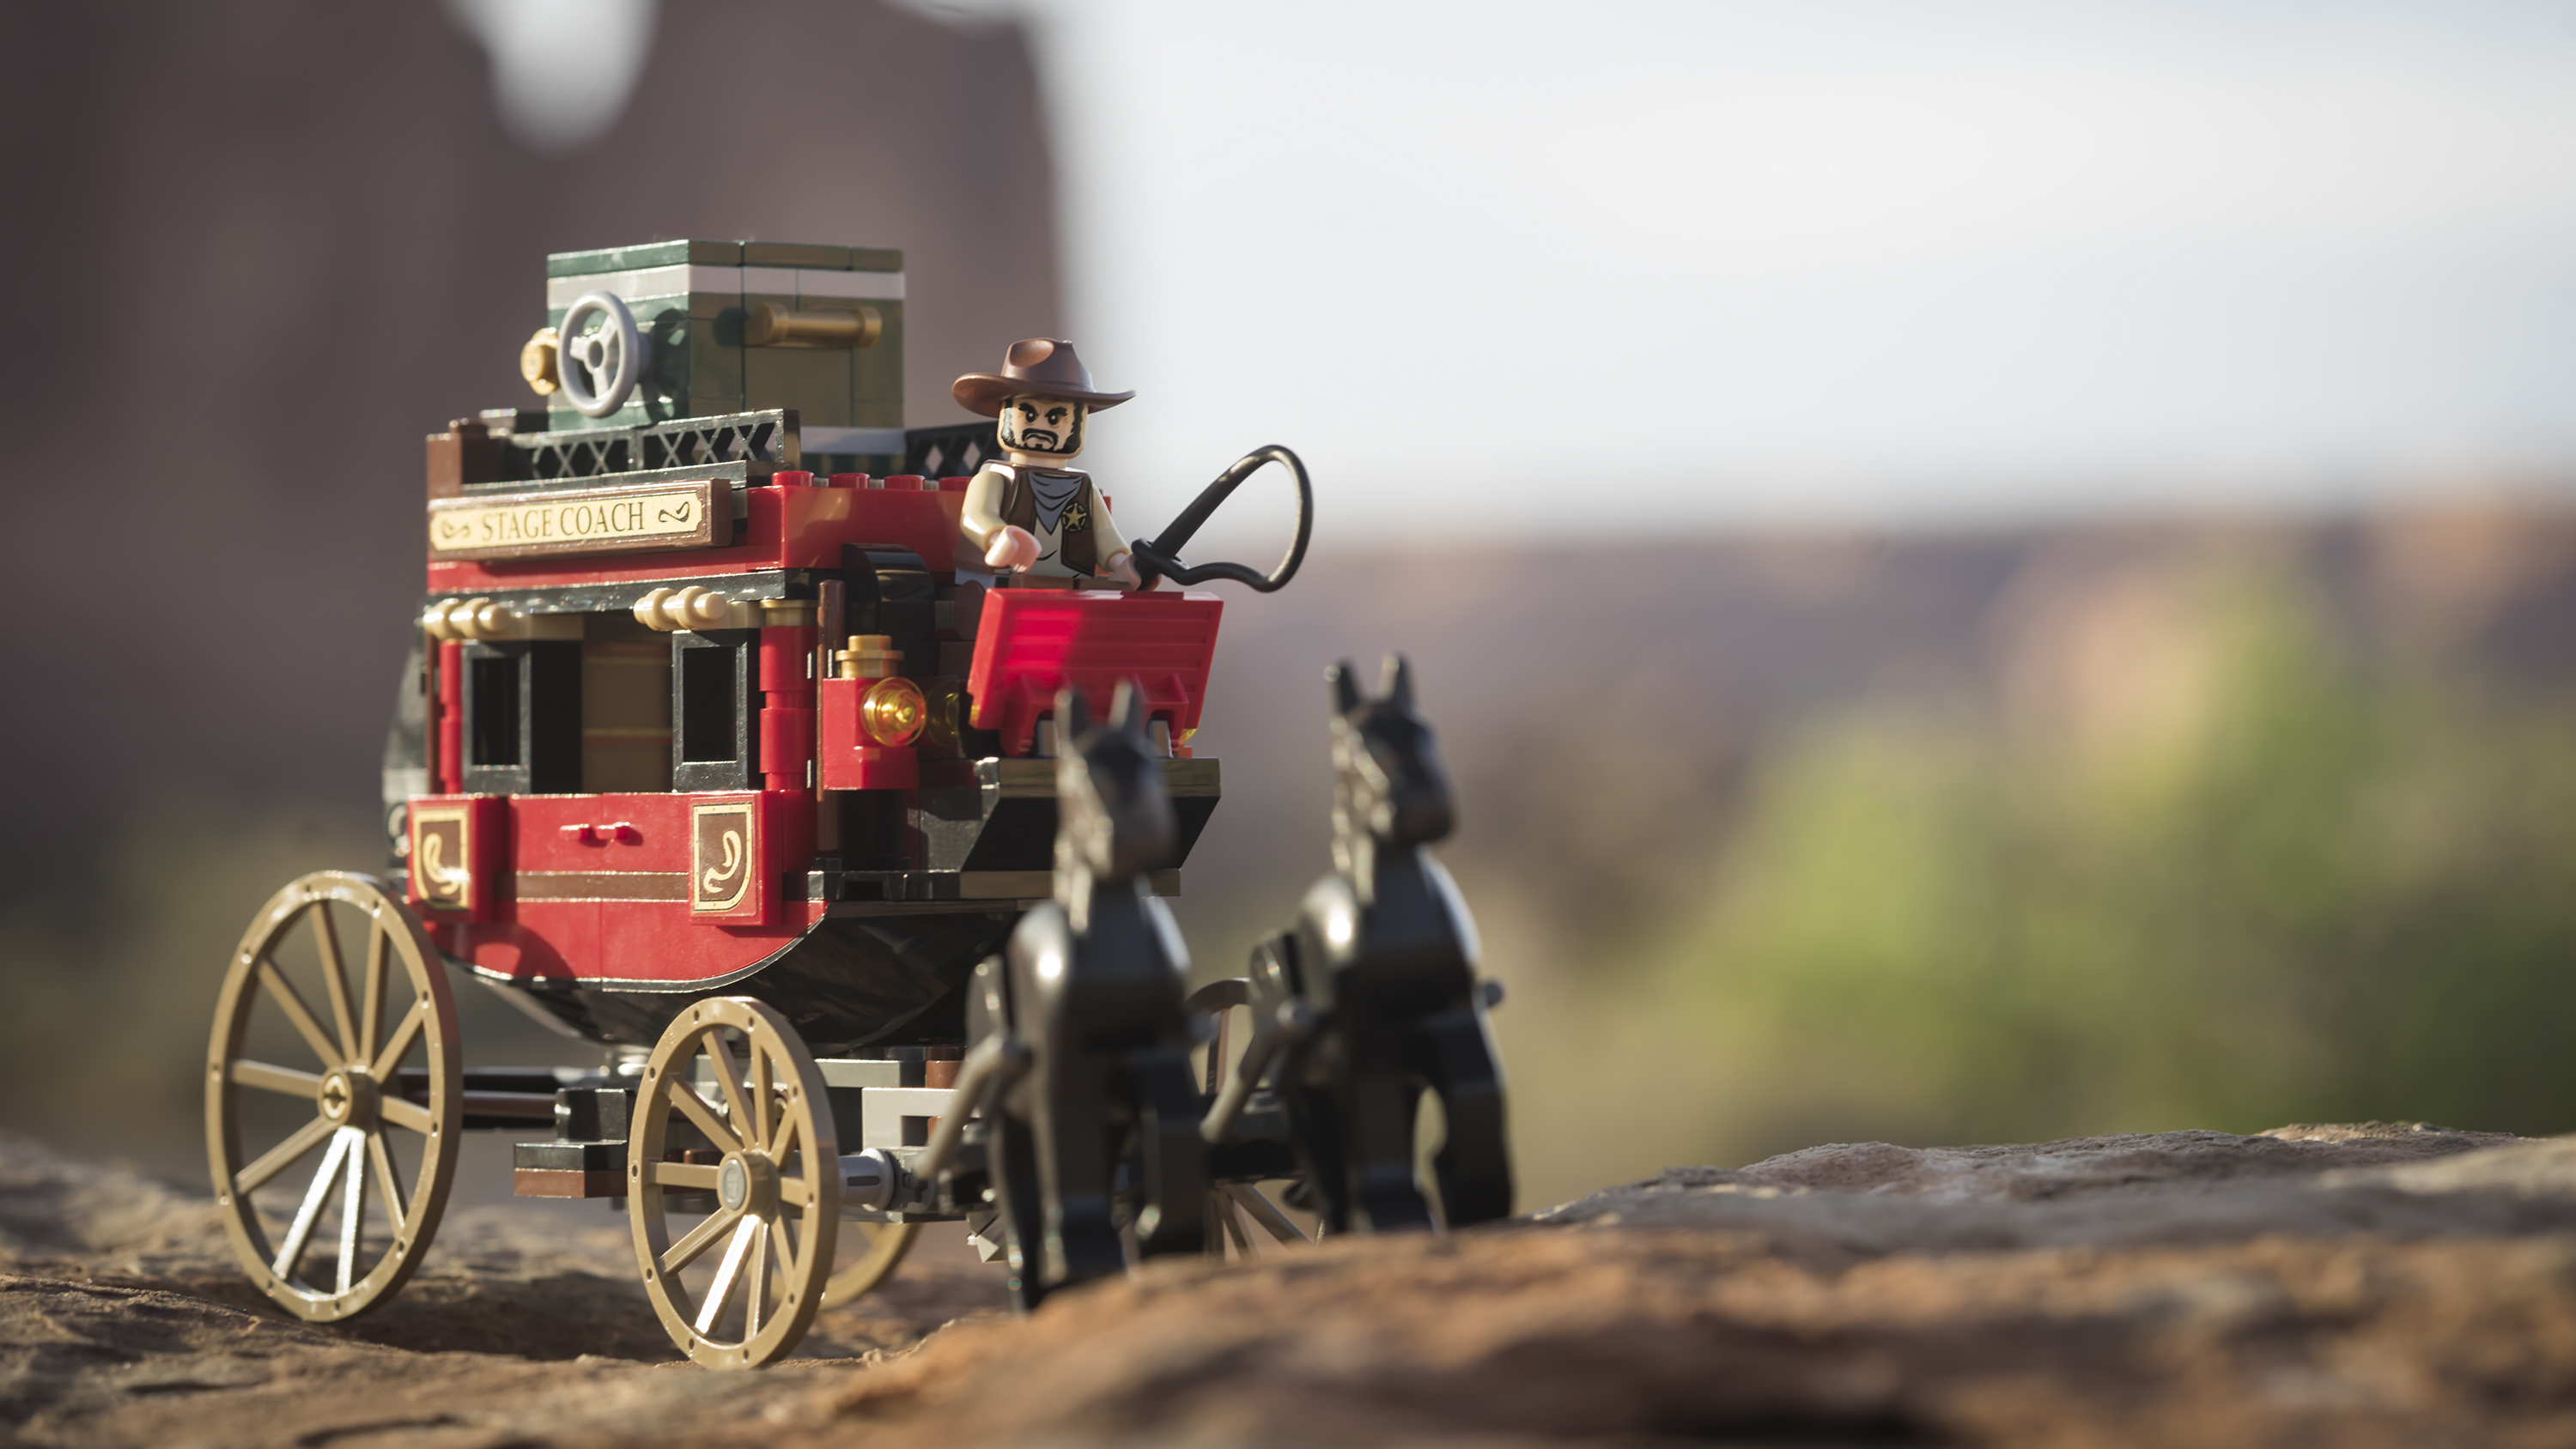 LEGO stage coach and two lego horses in the fading light of Arches NP, Utah